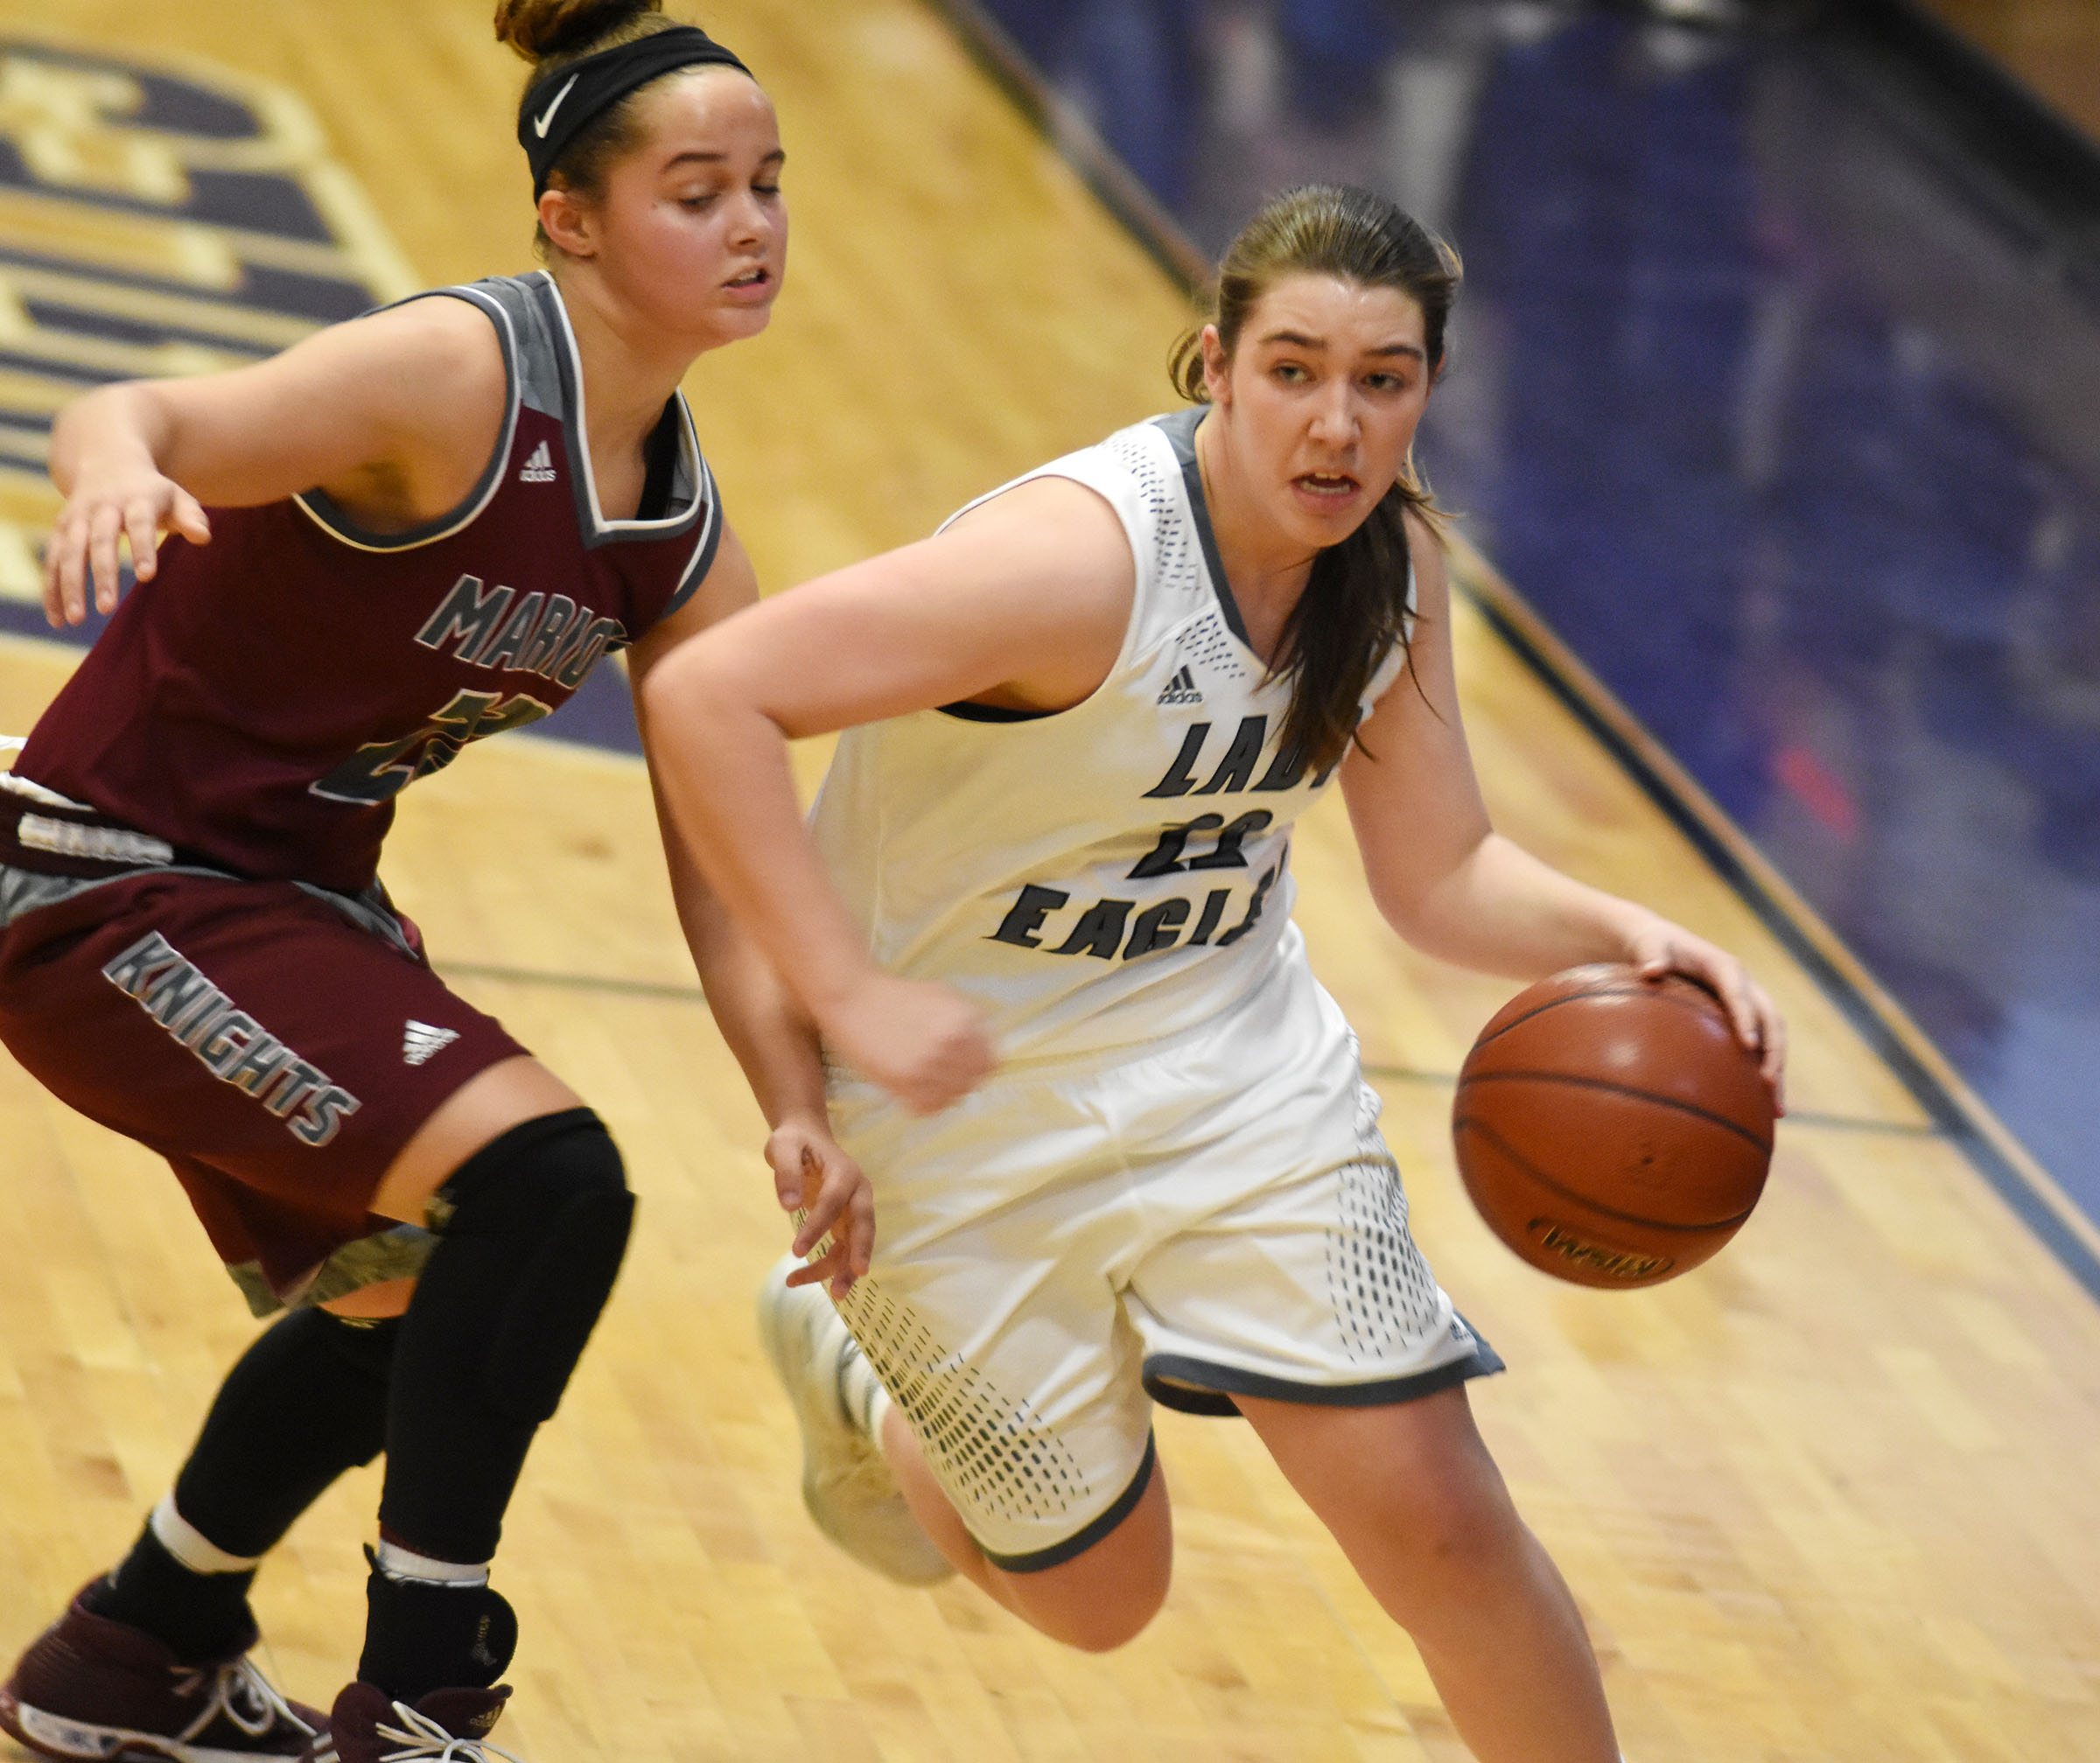 CHS freshman Abi Wiedewitsch drives the ball.